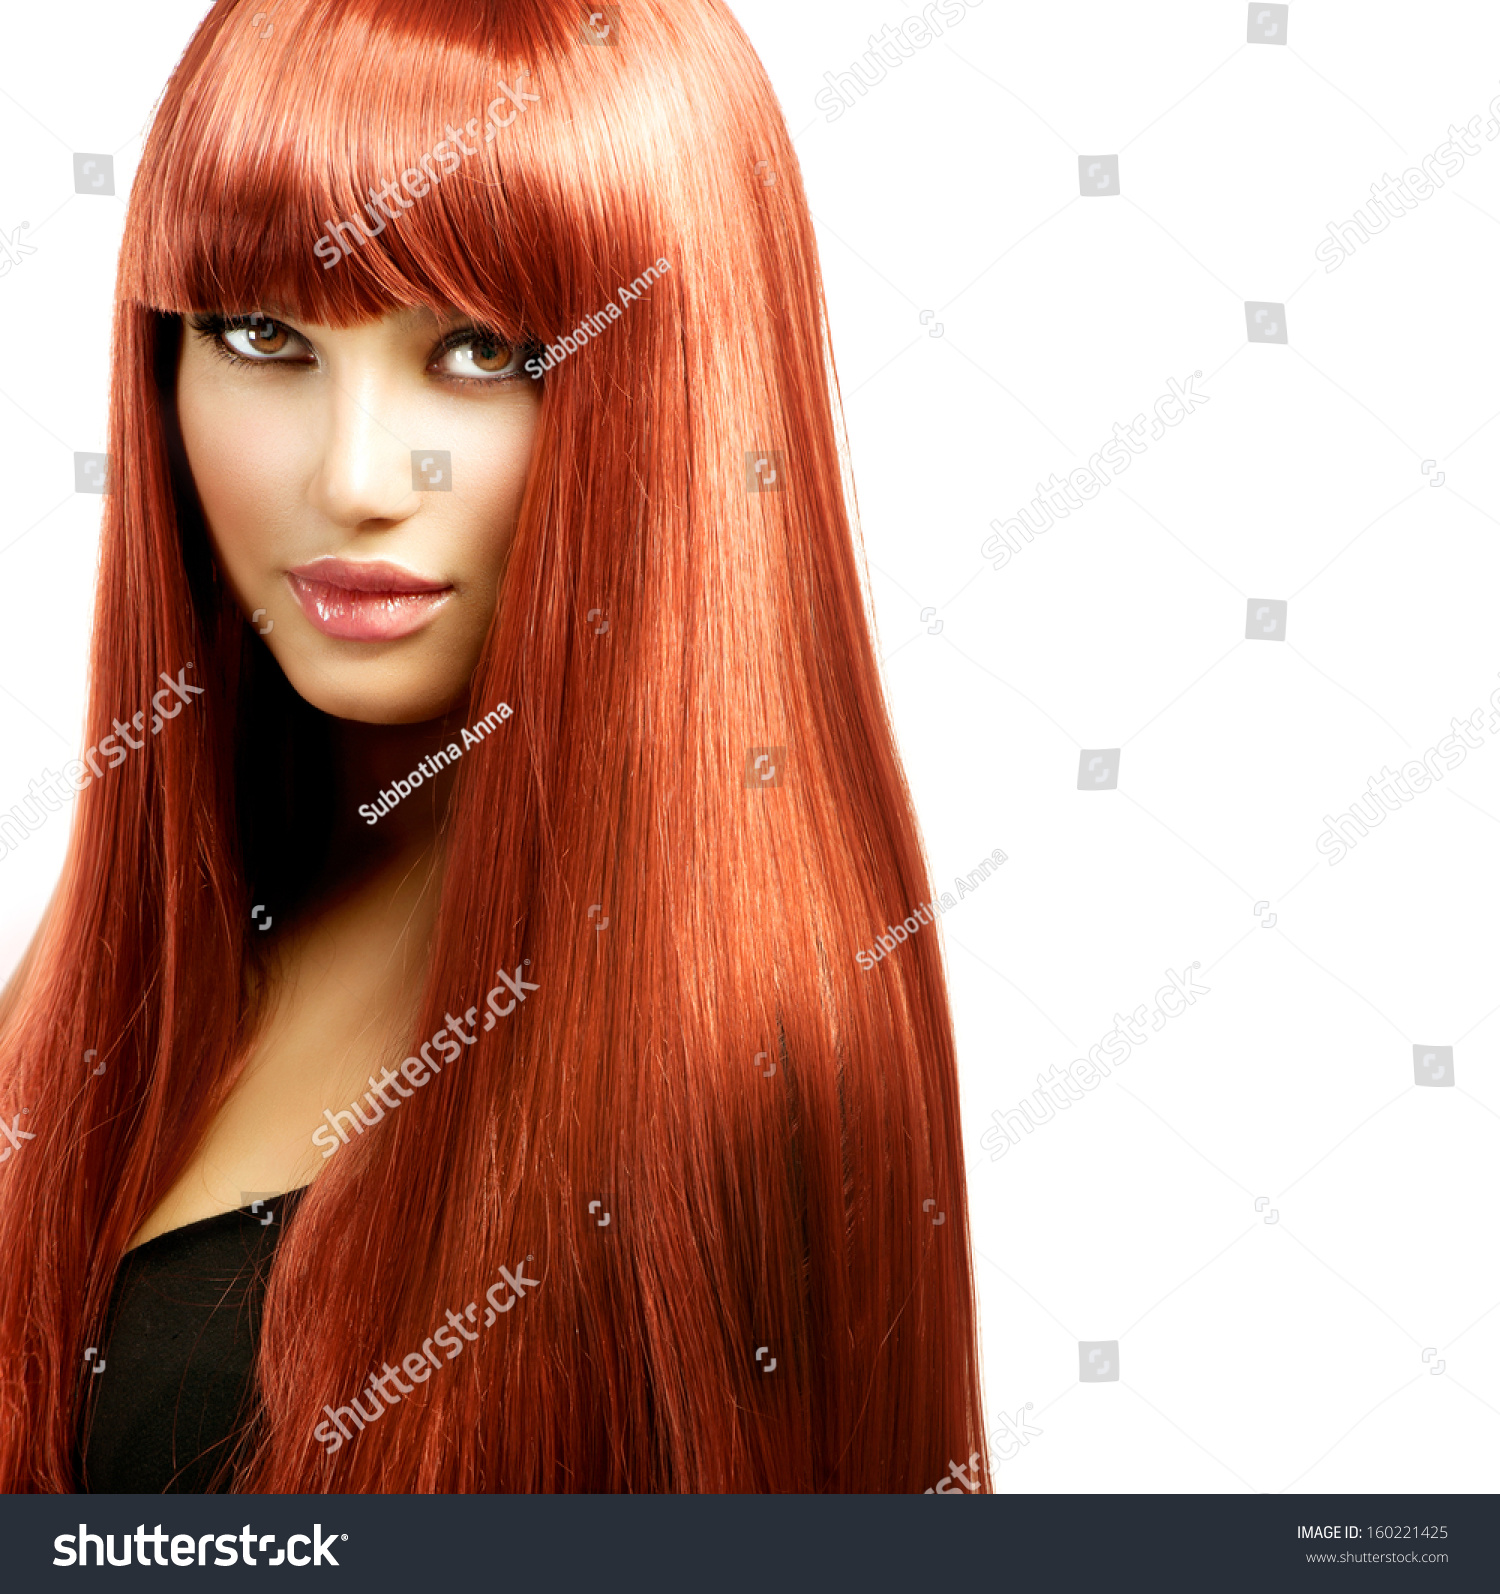 Red Extensions Of Me Download 35